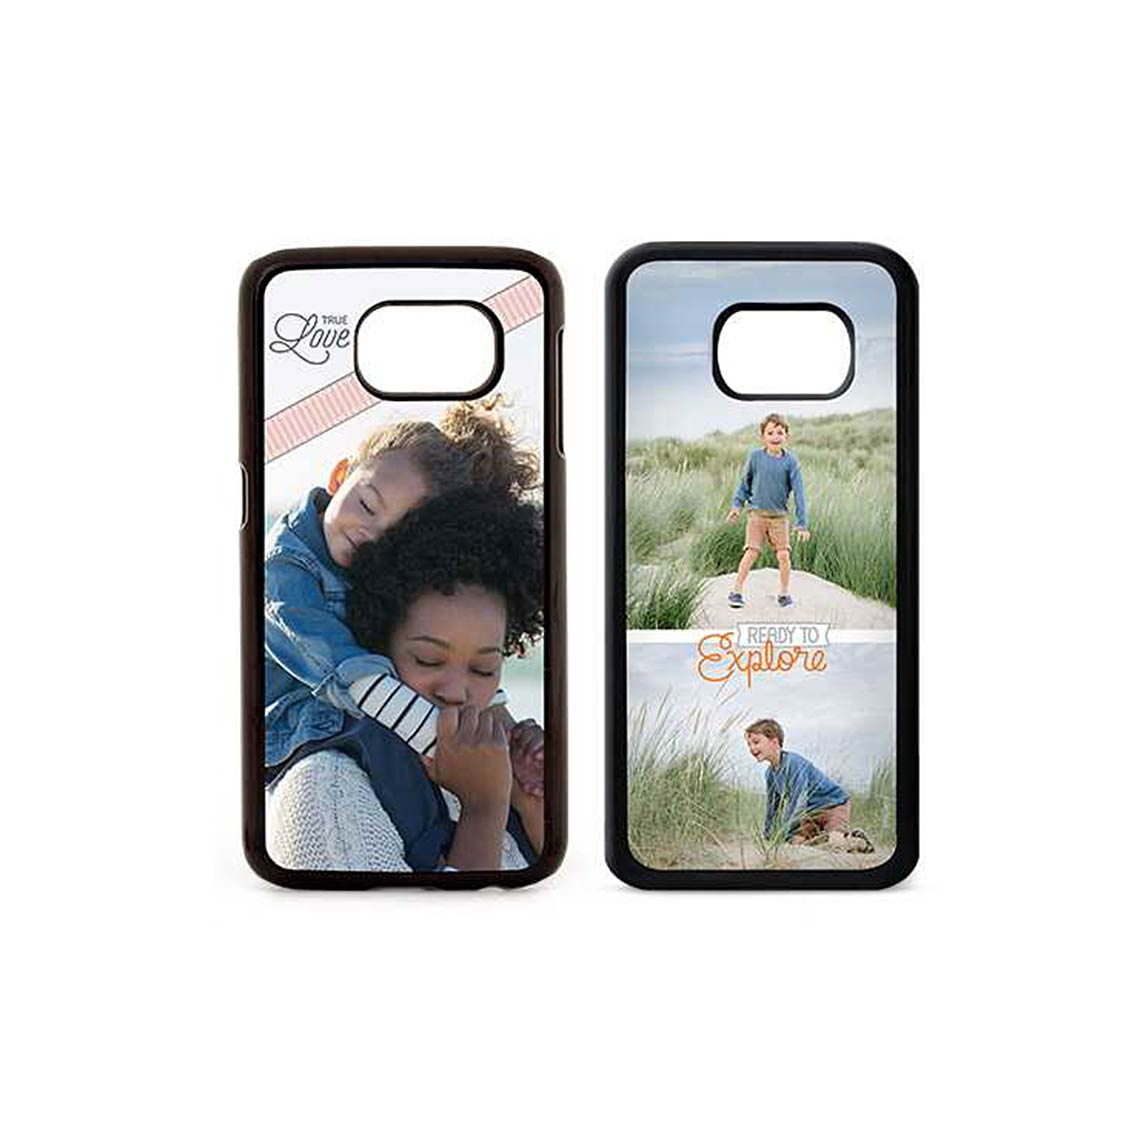 on sale c967e be9c9 Samsung Galaxy S7 Photo Phone Case | Personalised Samsung Galaxy ...